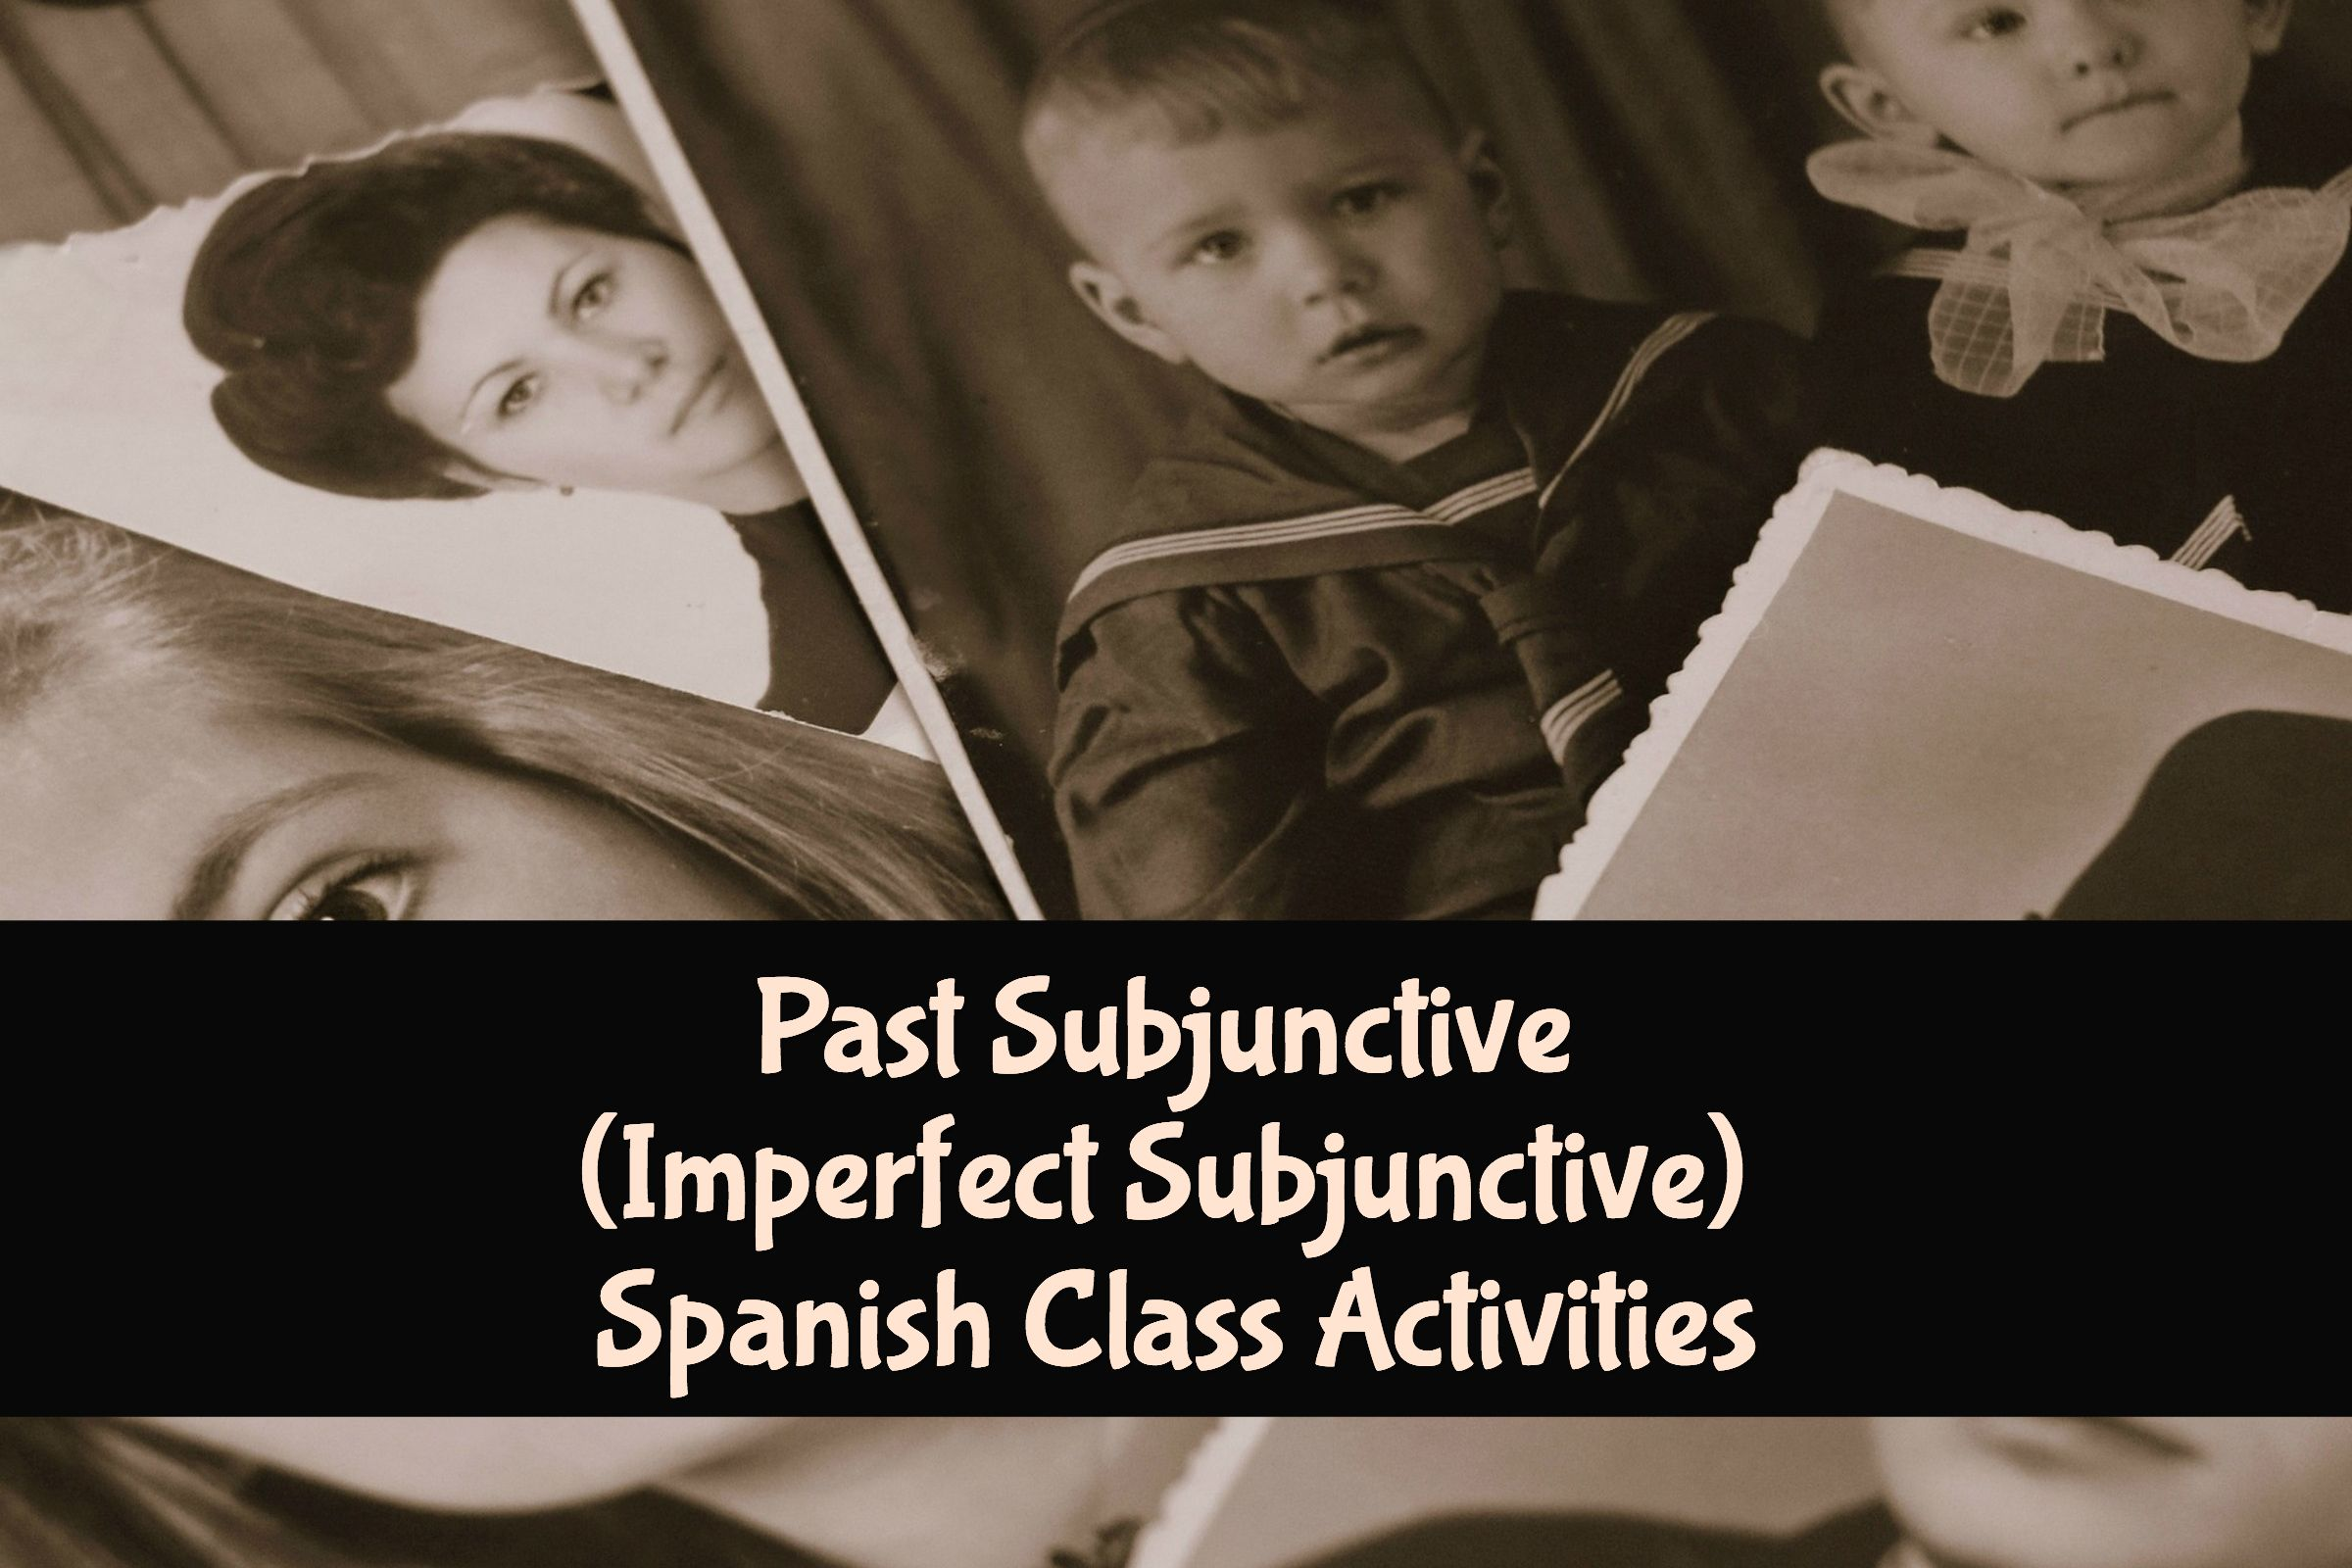 Past Subjunctive Imperfect Subjunctive Spanish Class